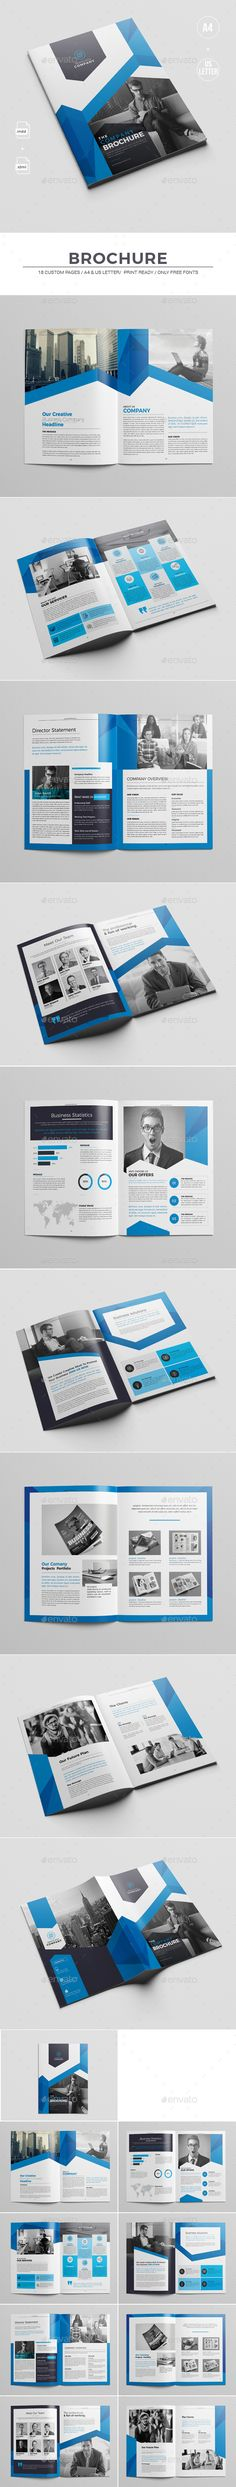 Brochure - Corporate Brochures Download here: https://graphicriver.net/item/brochure/19814990?https://graphicriver.net/item/brochure/19866474?ref=classicdesignp